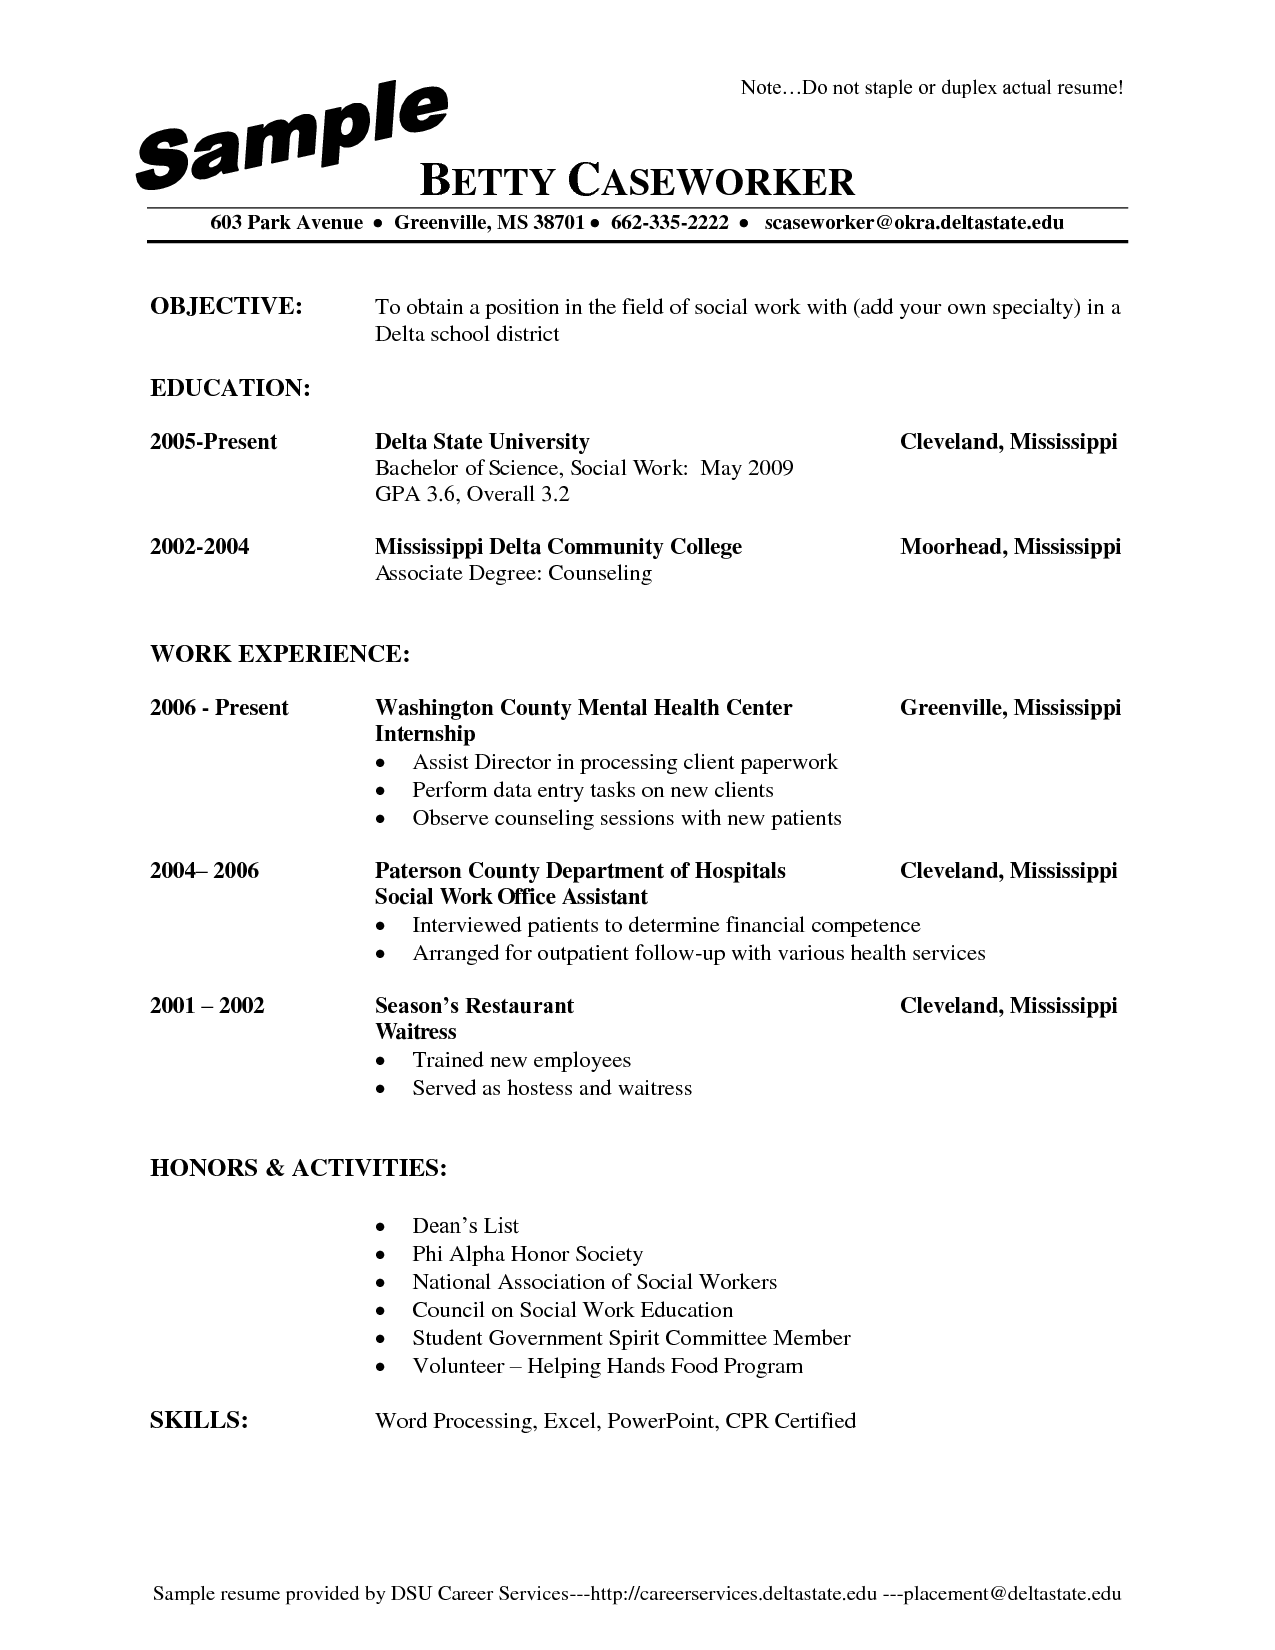 Waitress Resume Skills Examples httpwwwjobresumewebsite